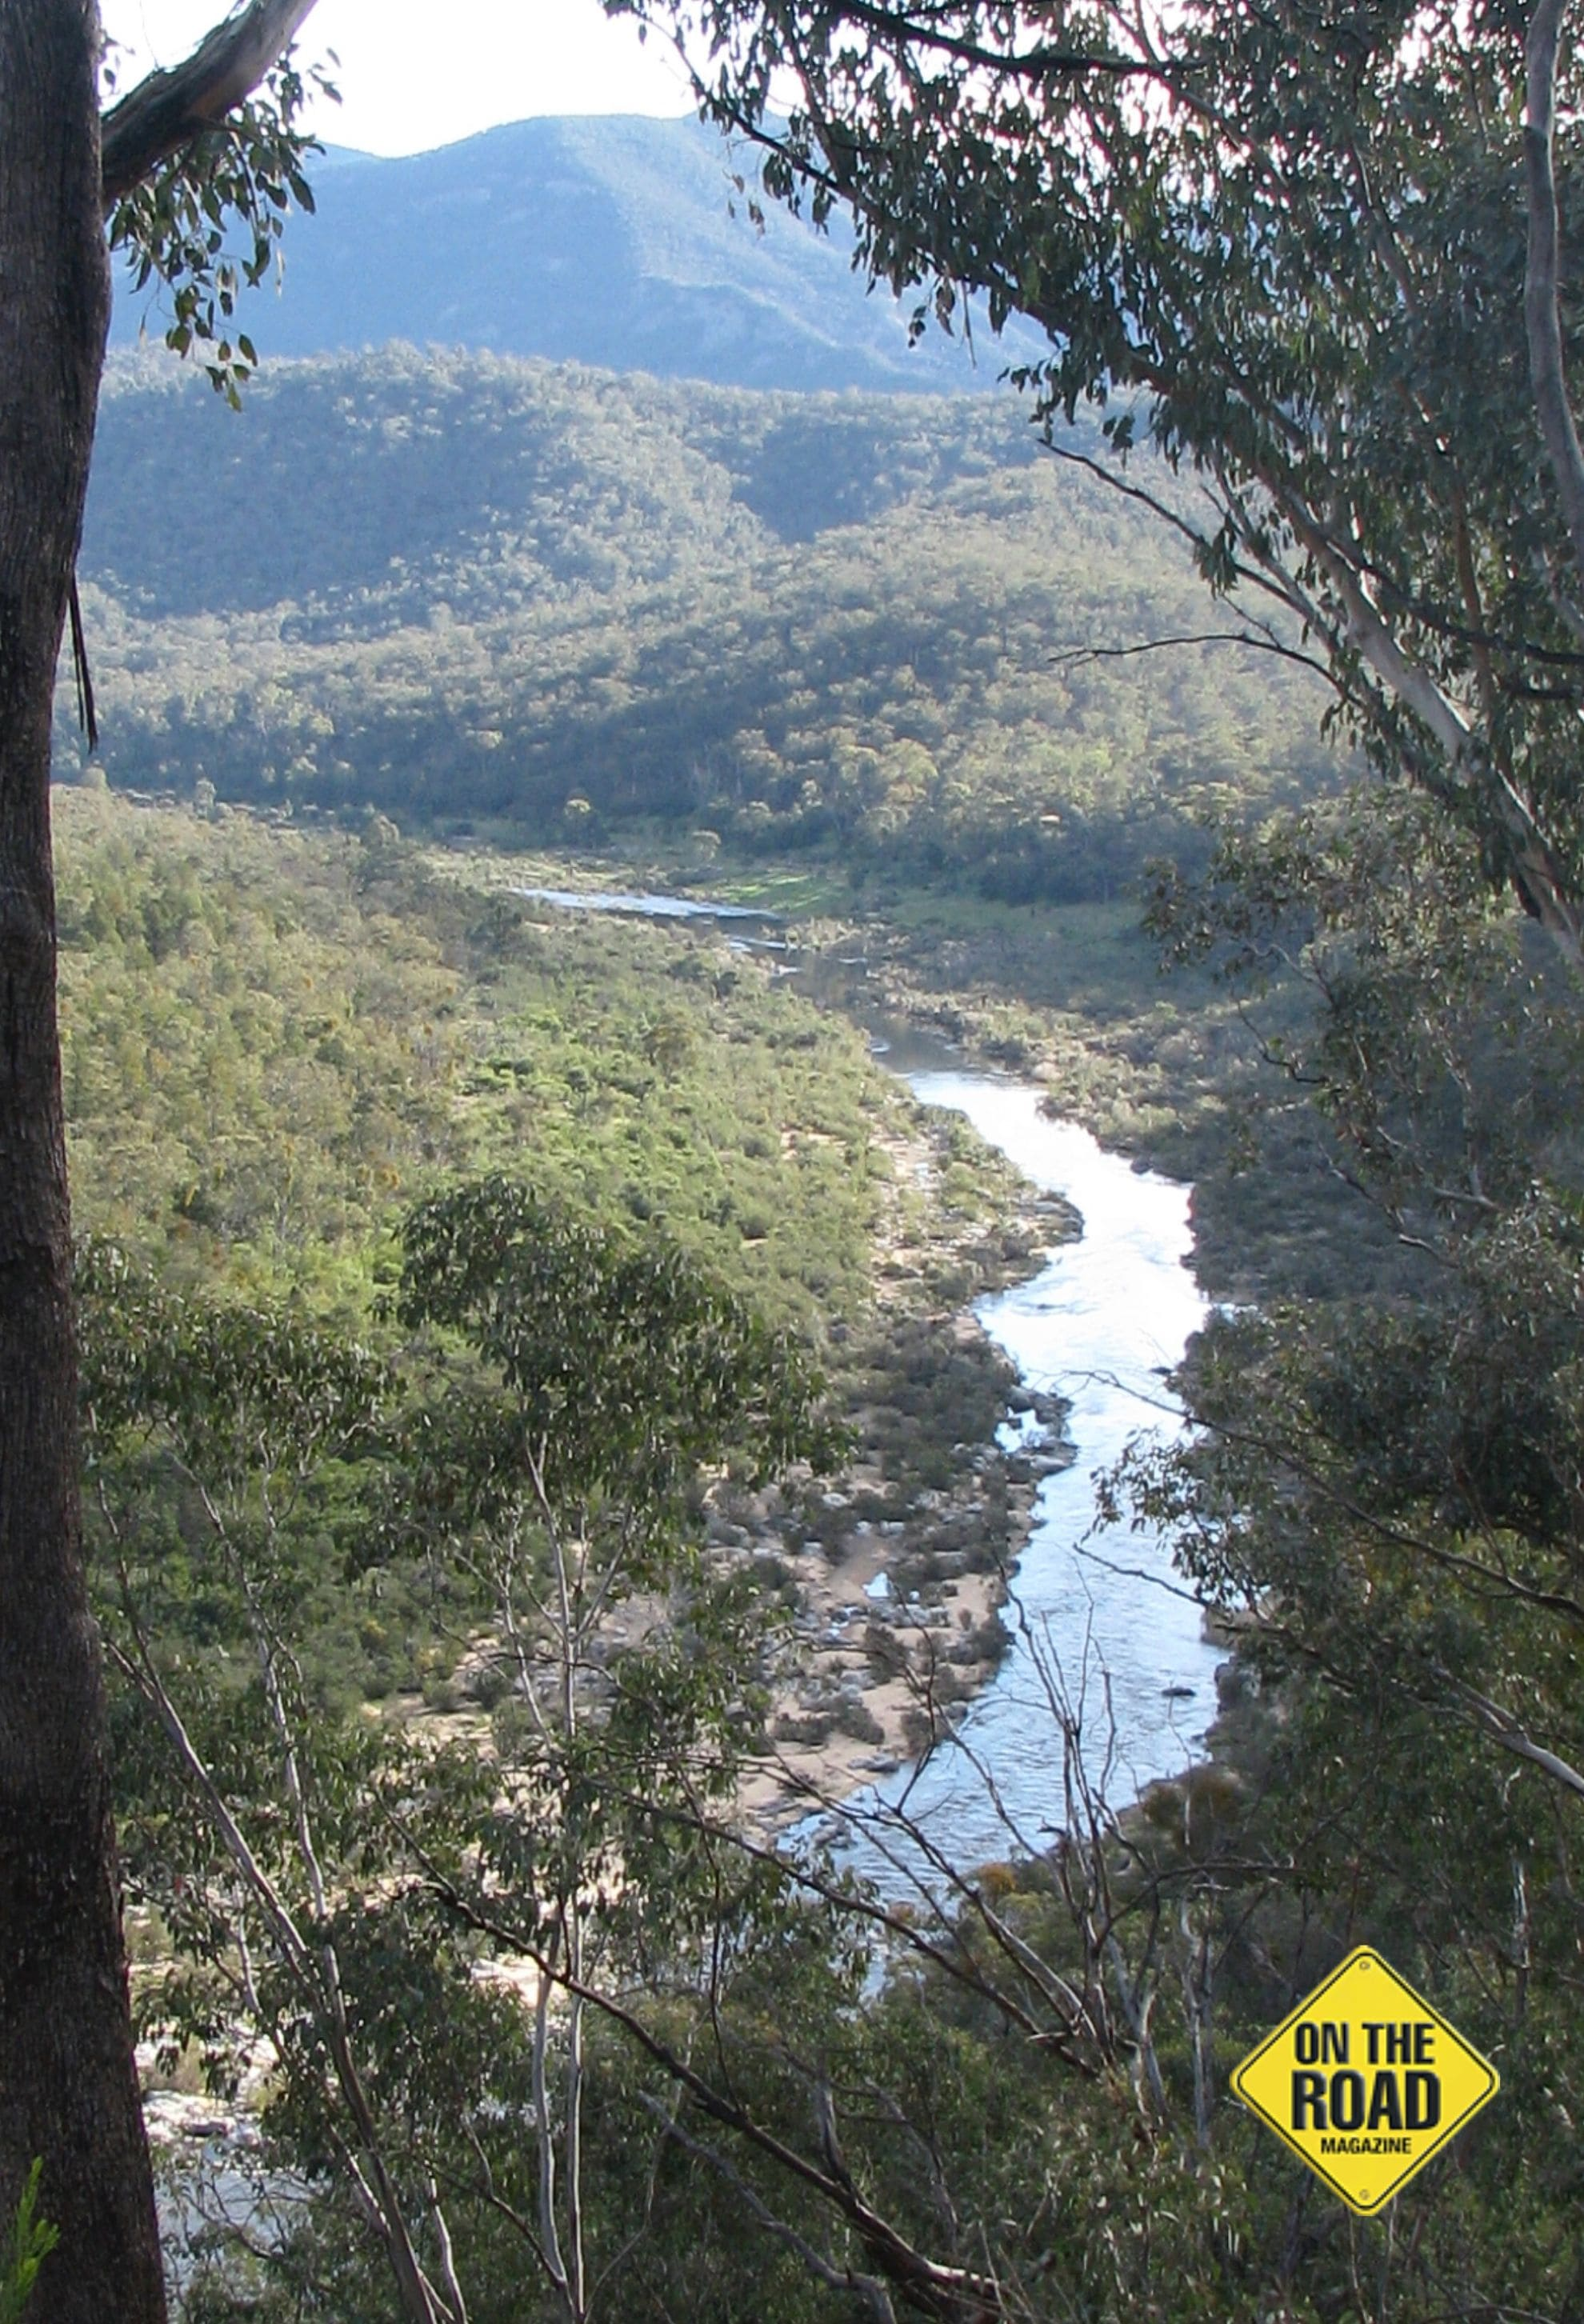 The Snowy River slowly making its way to the sea at Marlo